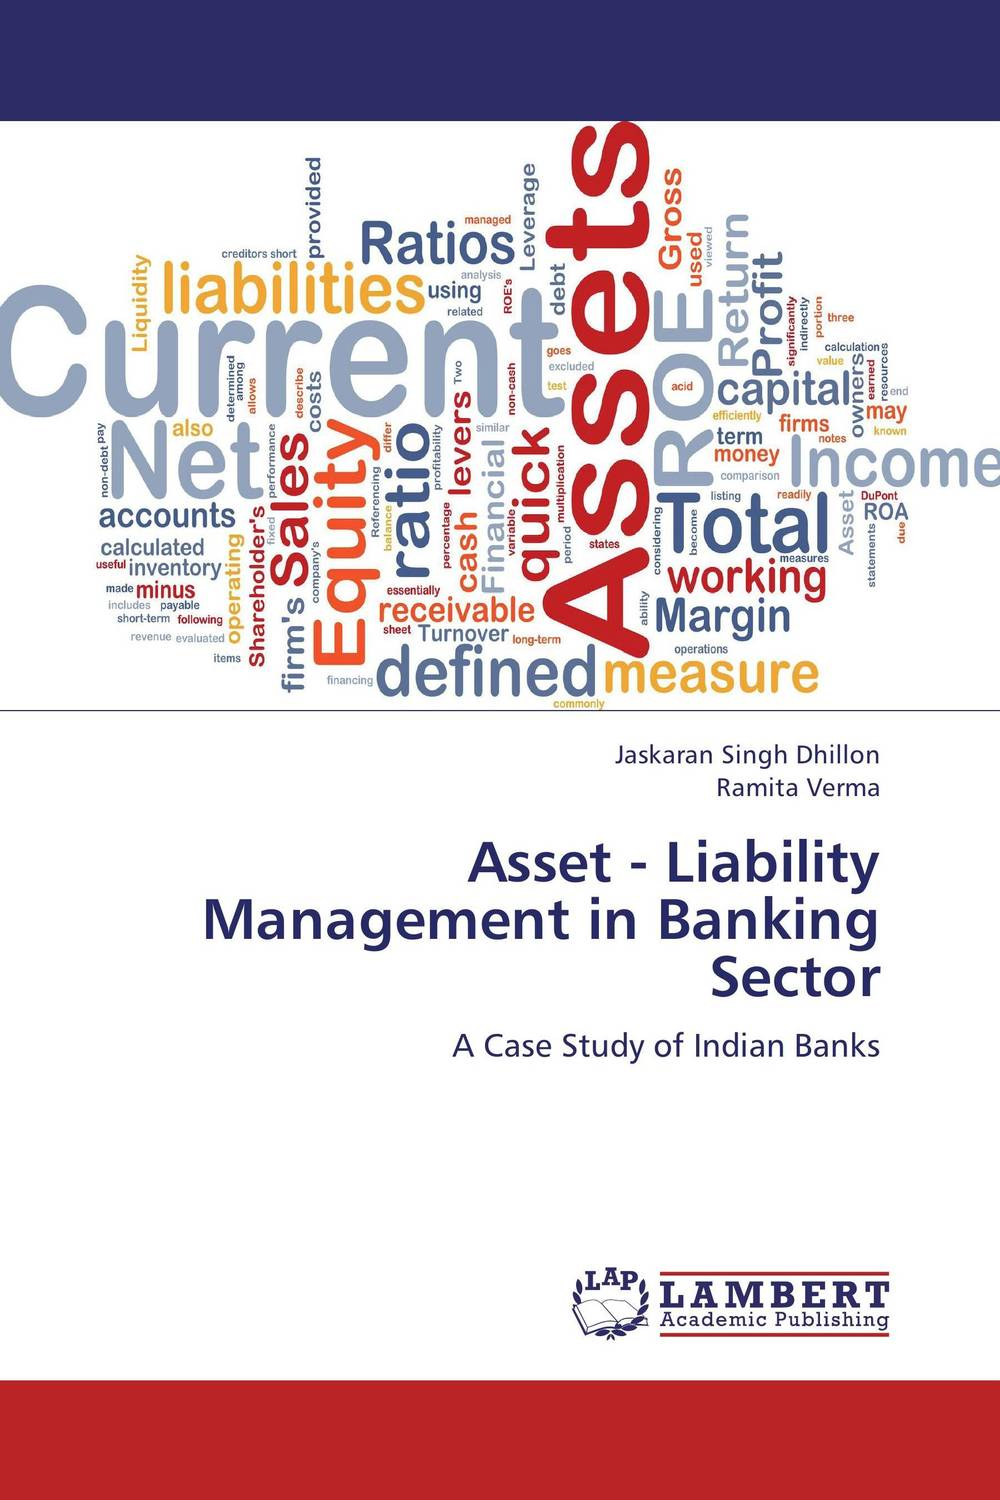 Asset - Liability Management in Banking Sector credit risk management practices